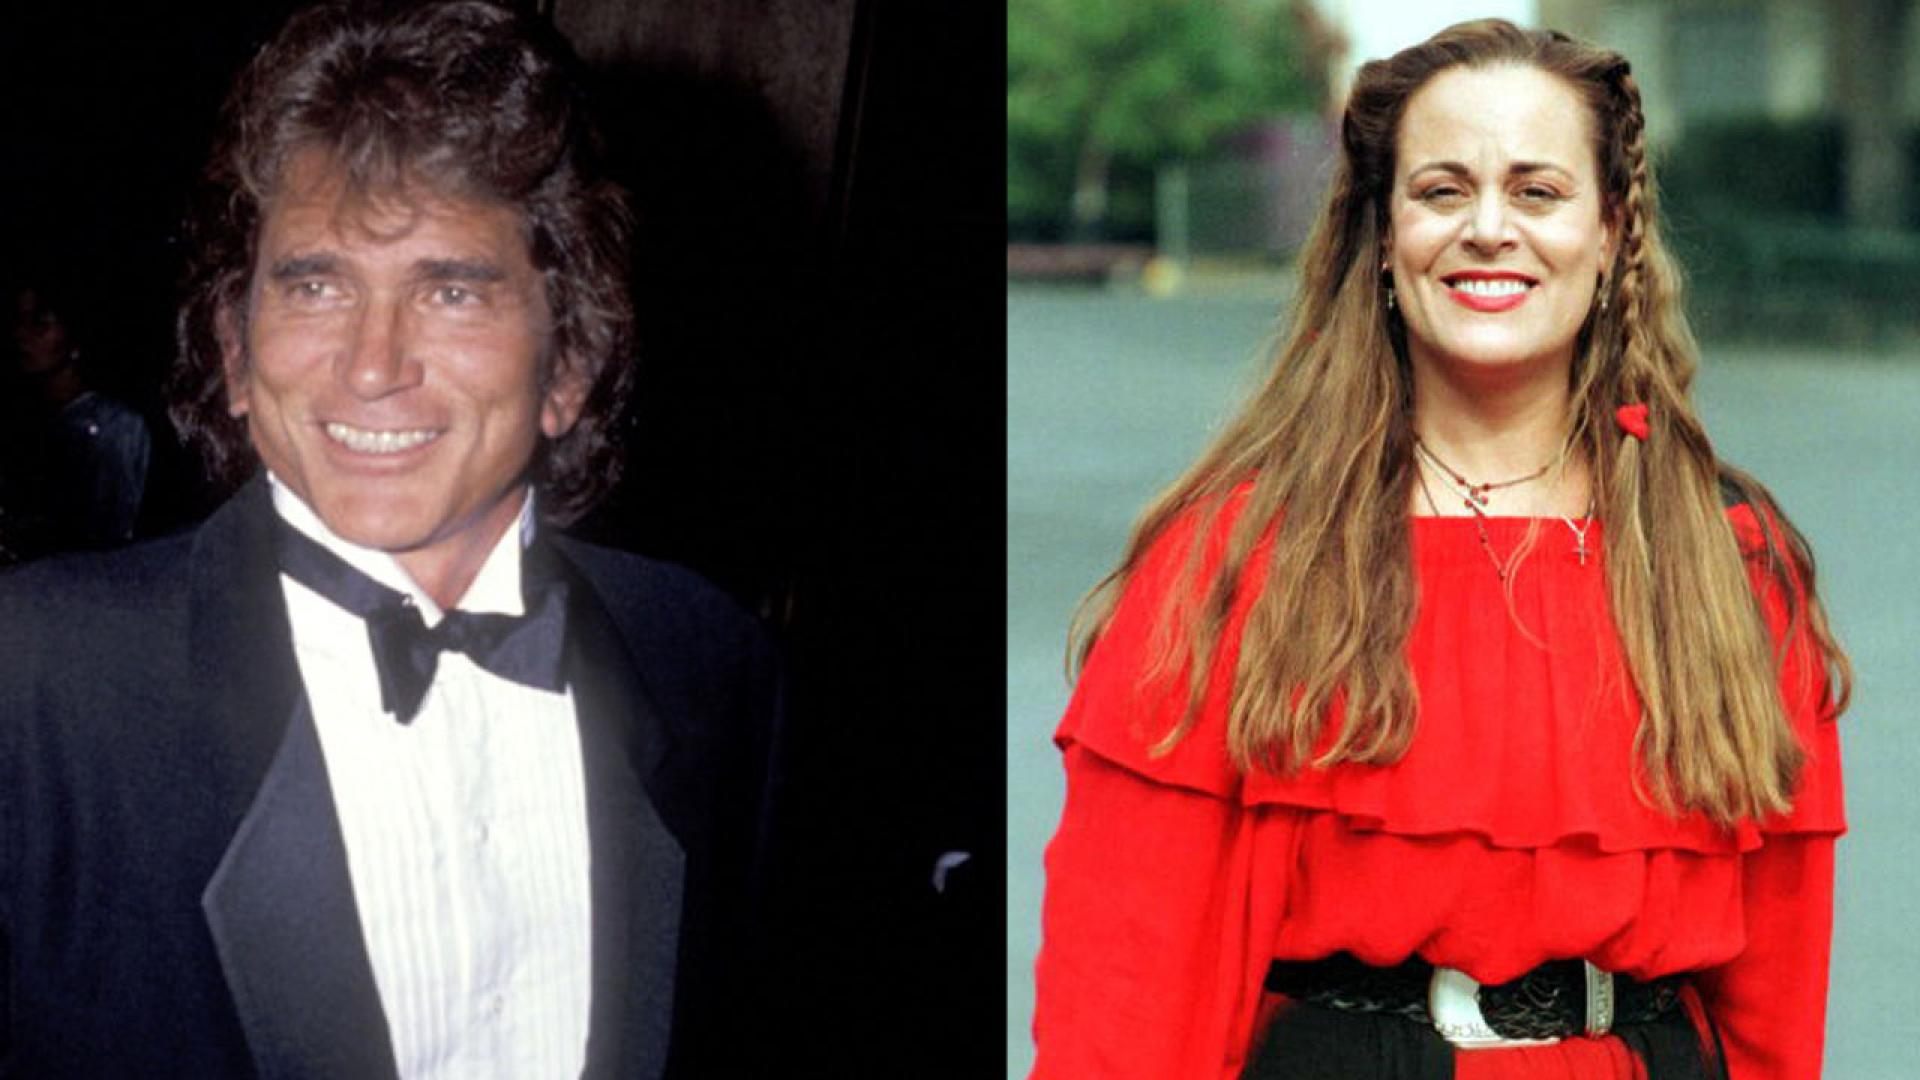 The late Michael Landon in a 1991 photo, and daughter, Cheryl Landon, in a 1999 photo